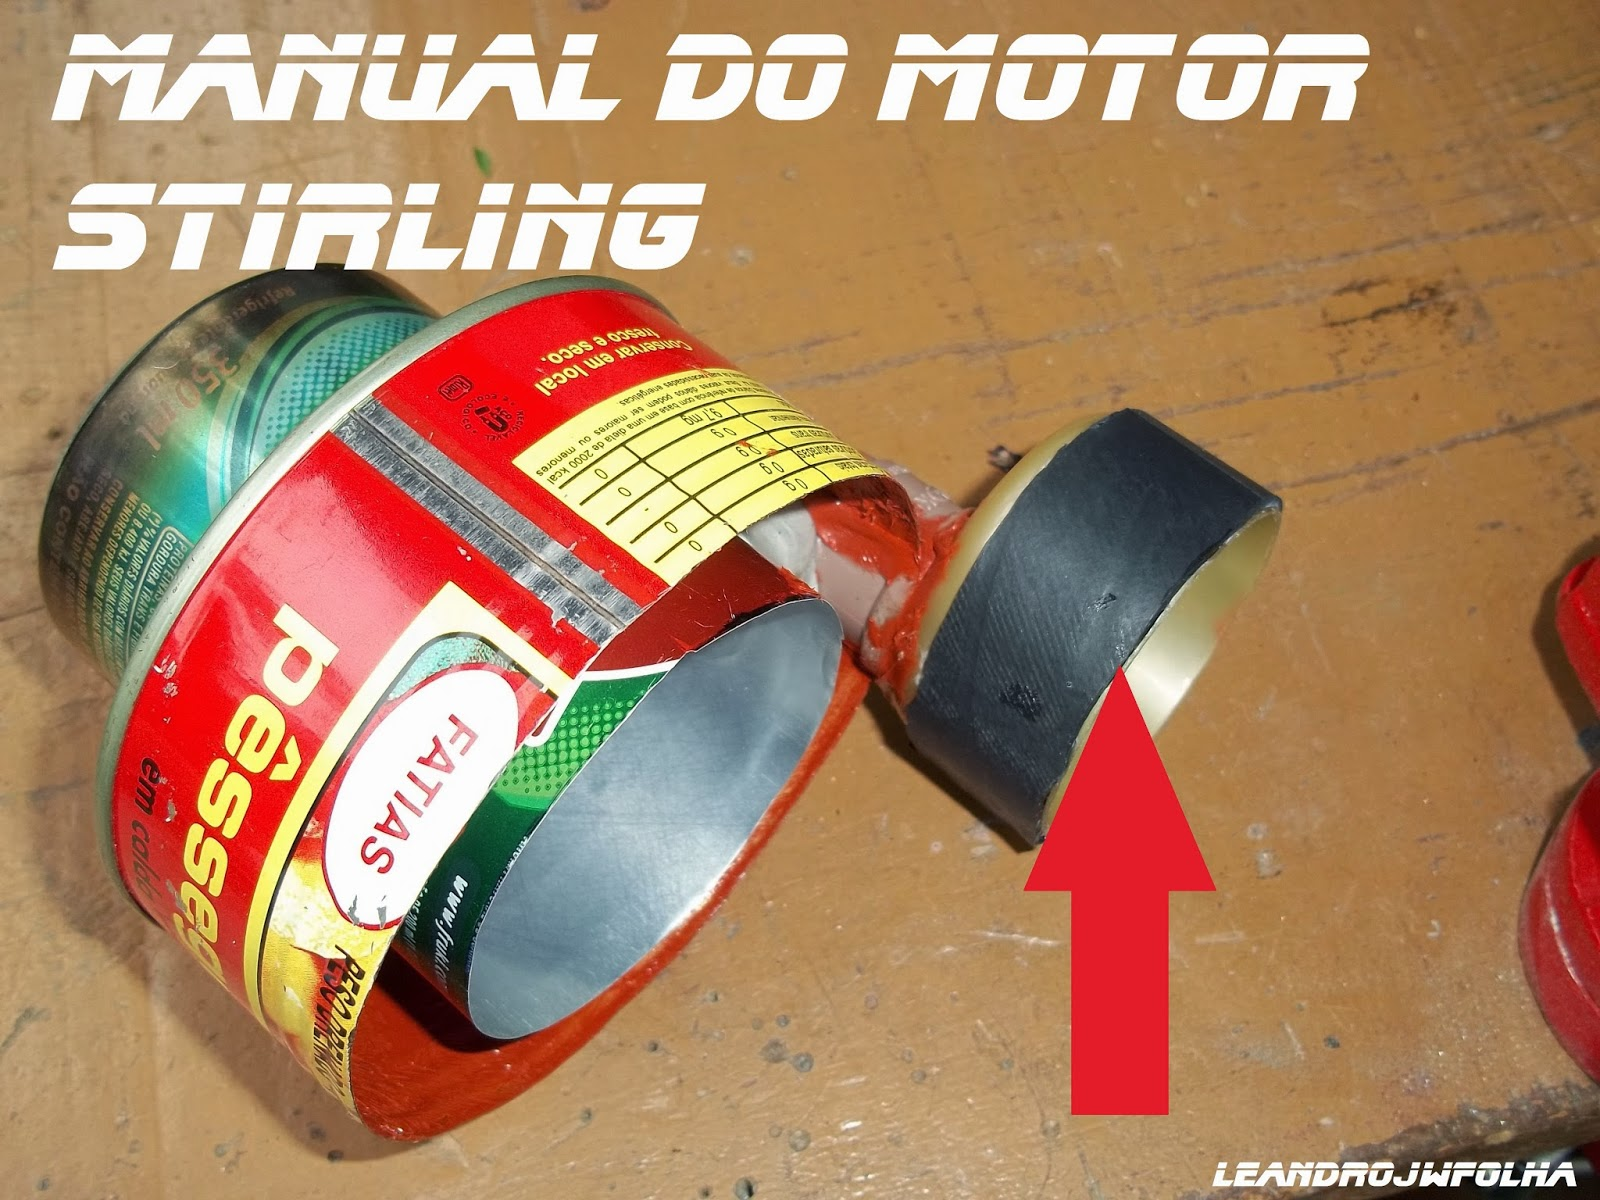 Cilindro del pistón potencia (gama del motor), Manual do motor Stirling